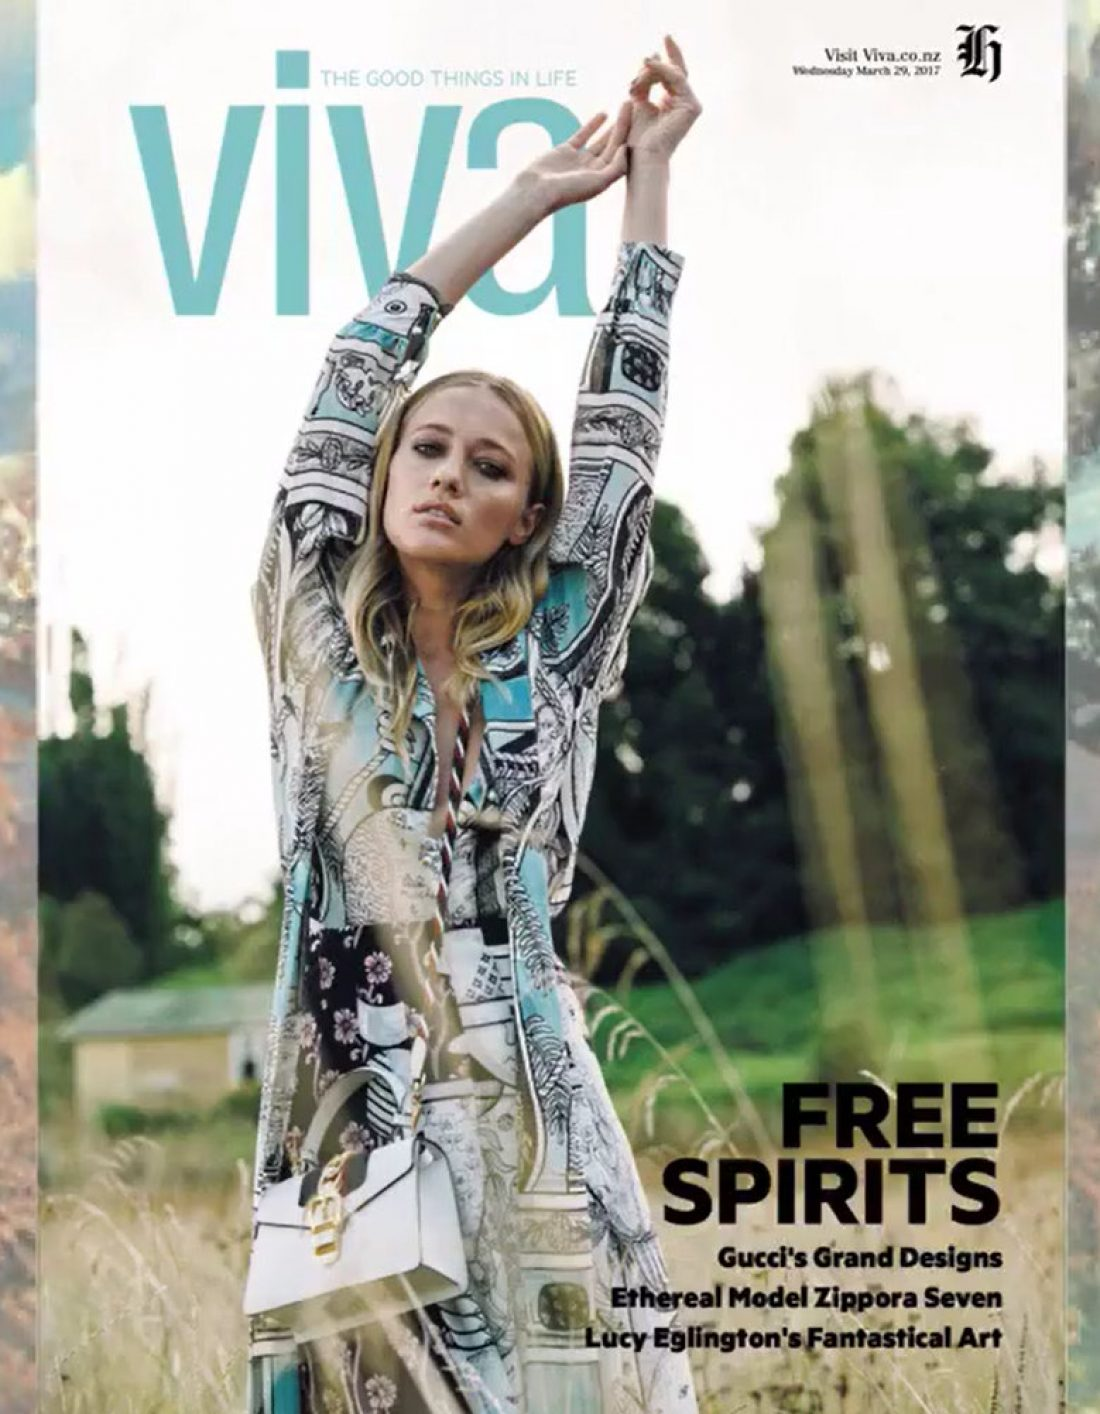 Zippora photographed by Tom Gould for Cover of Viva magazine wearing Gucci : Styled by Dan Ahwa; Mua: Kiekie Stanners